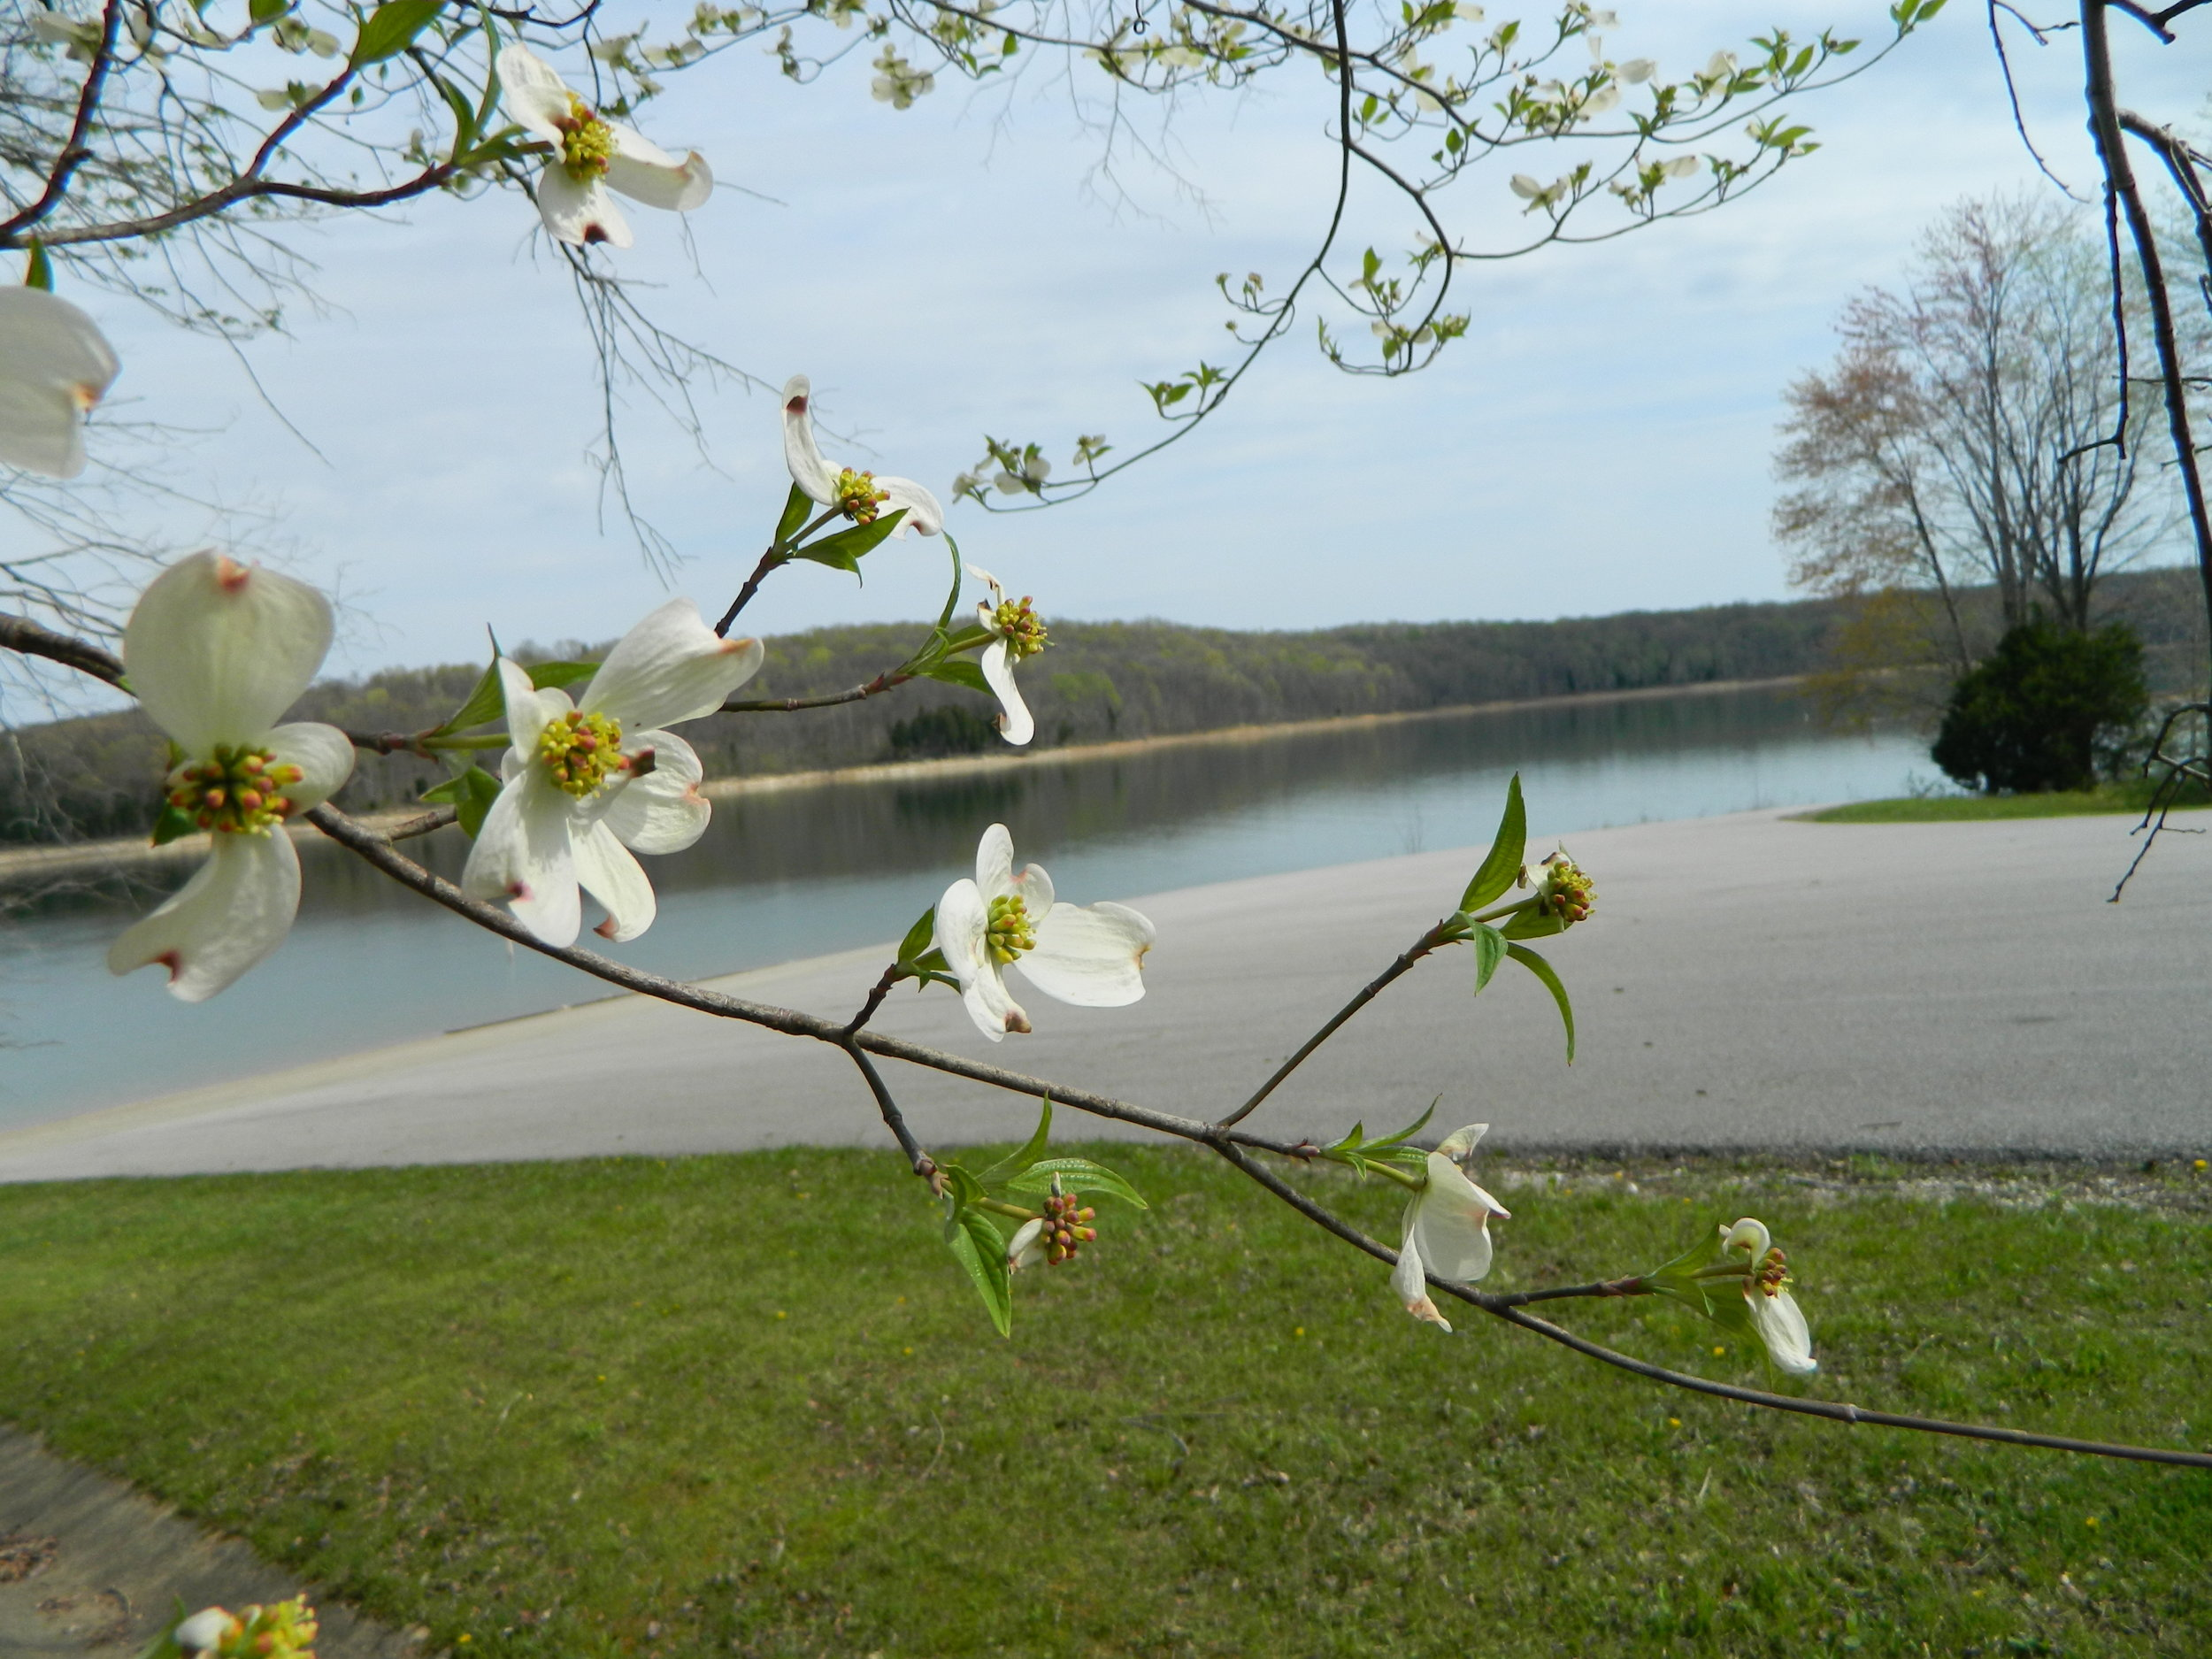 The dogwood trees in bloom are one of Spring's most beautiful scenes on Patoka Lake.